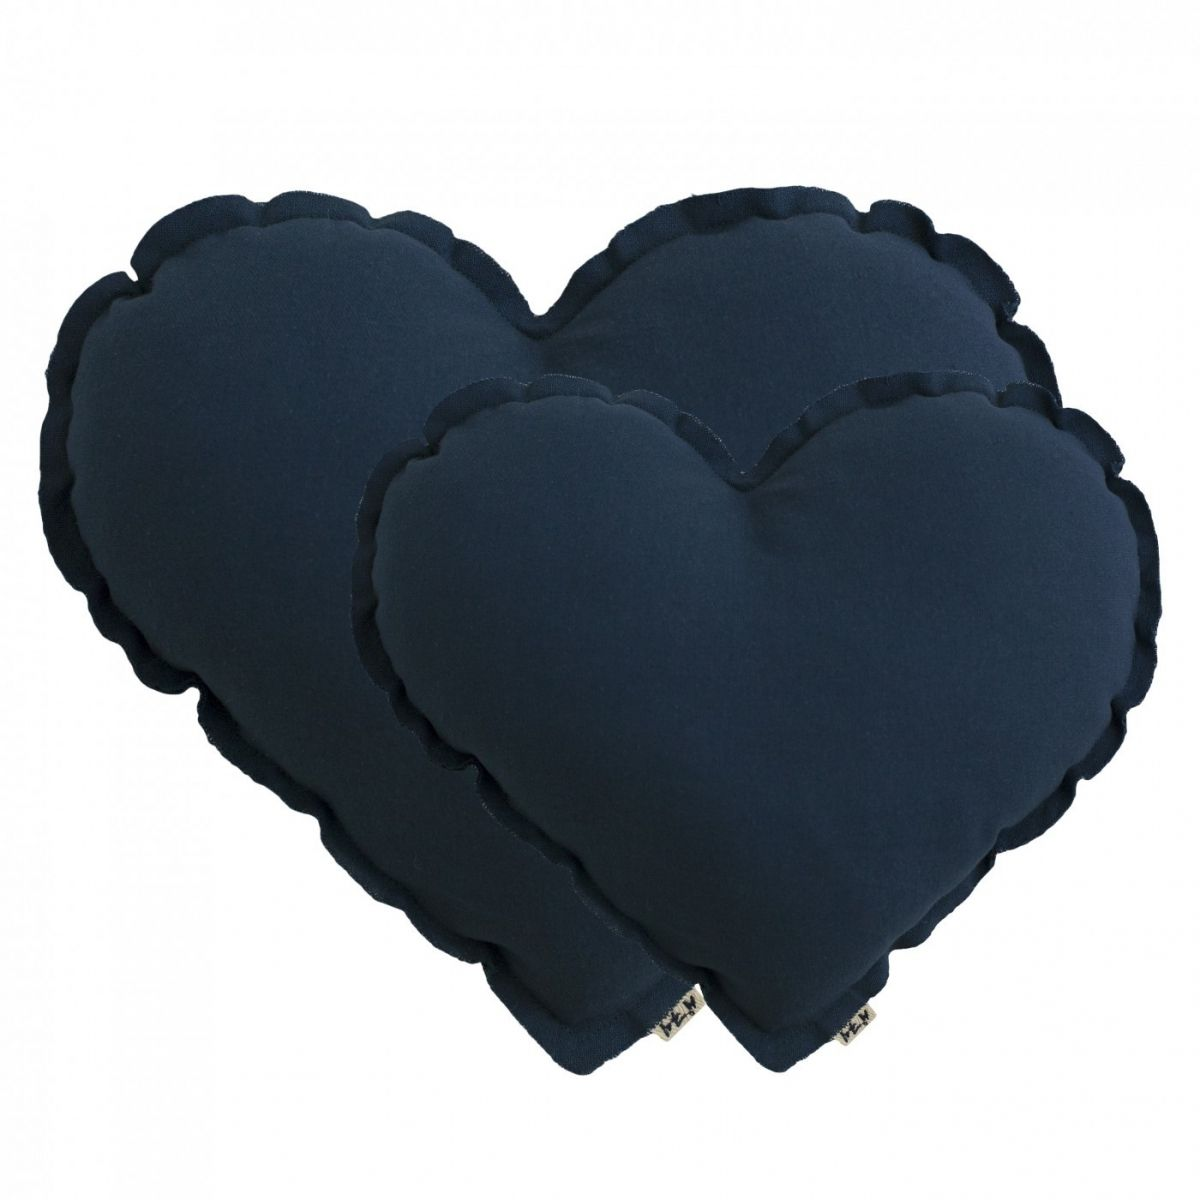 Heart Cushion night blue with white stars - Numero 74